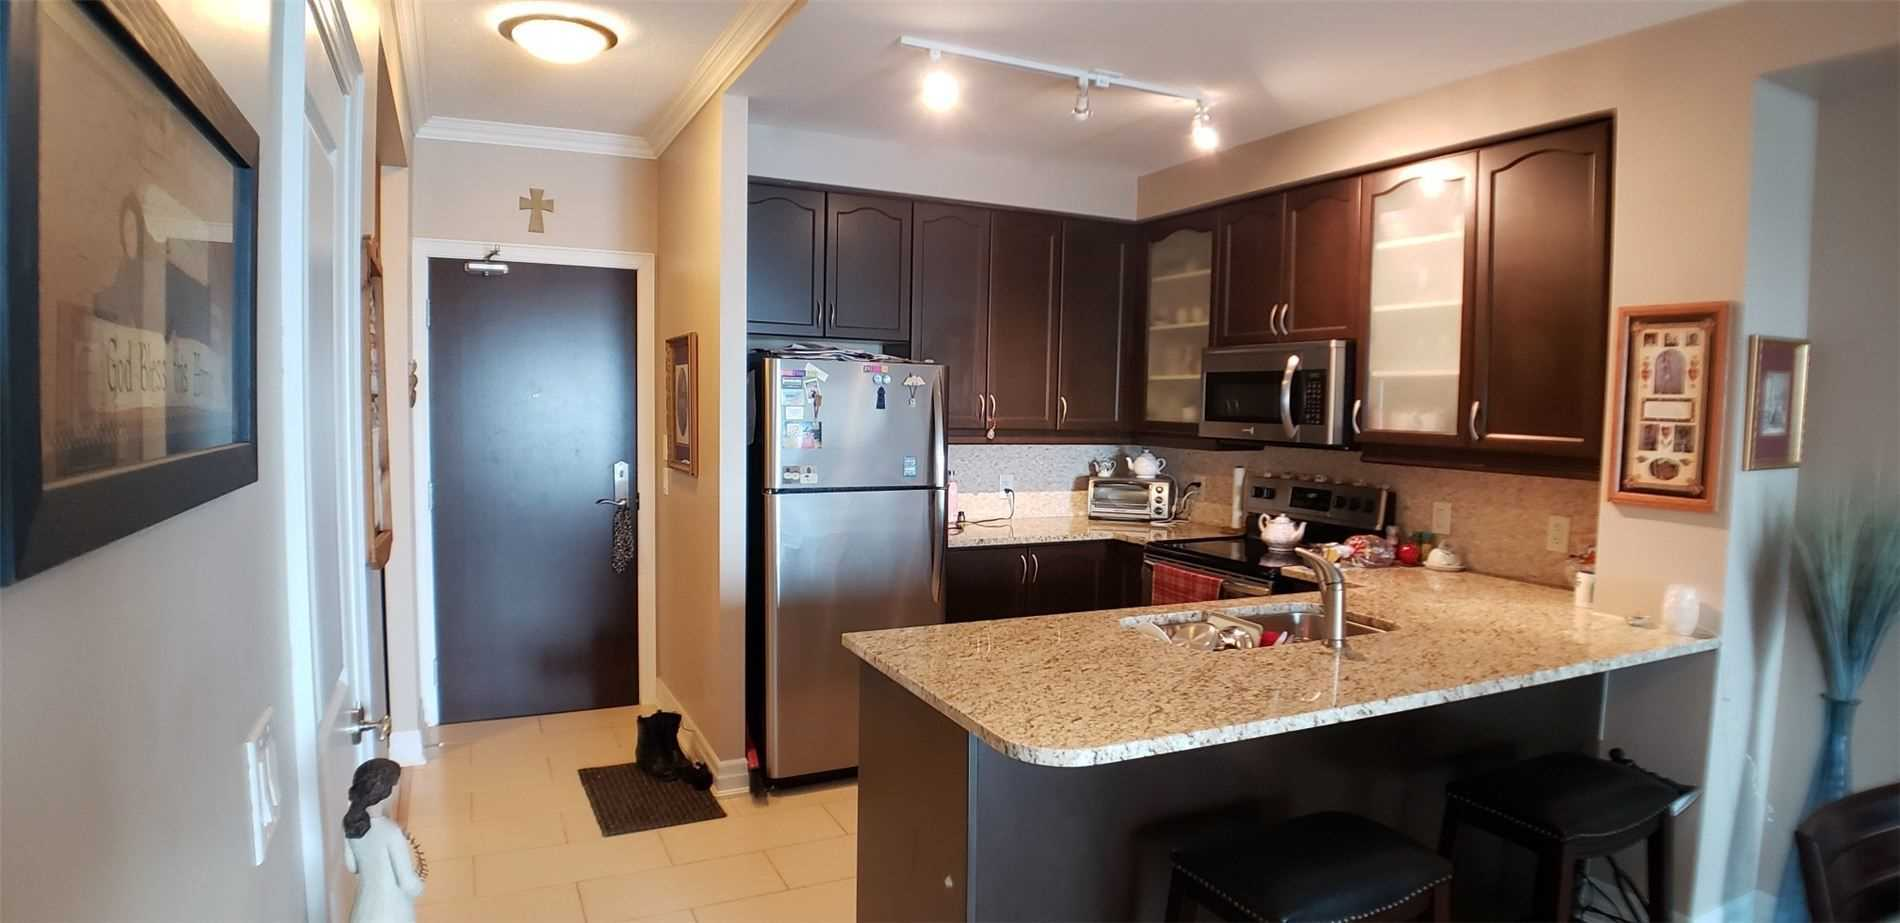 Image 3 of 15 showing inside of 1 Bedroom Condo Apt Apartment for Sale at 100 John St Unit# 803, Brampton L6W0A8